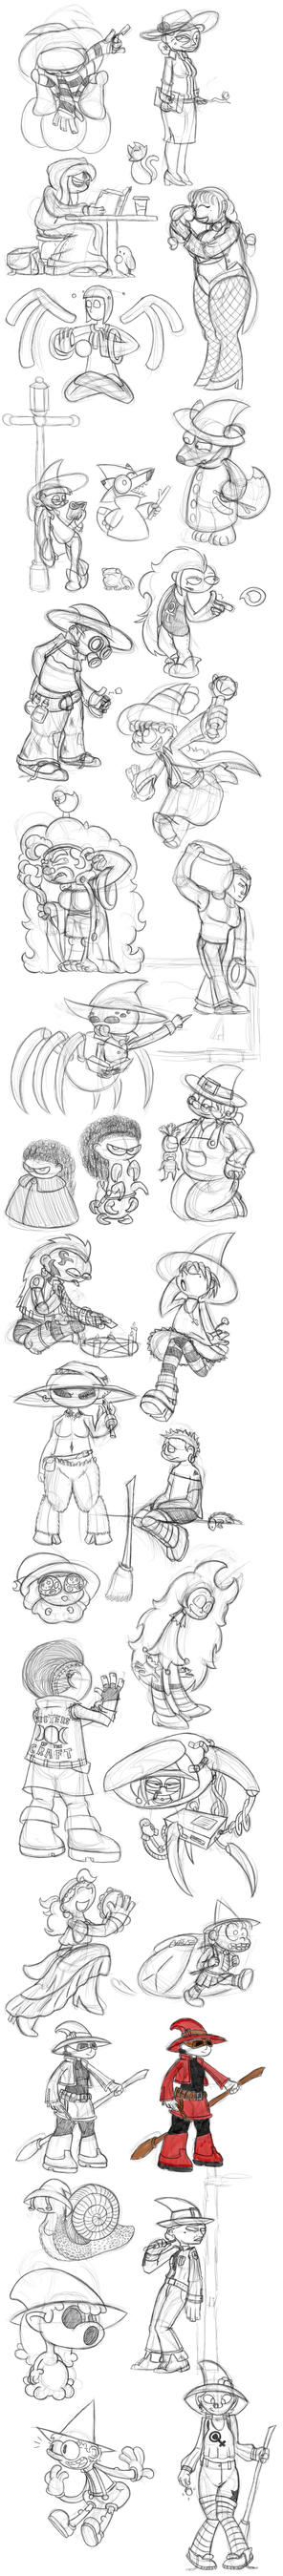 October 2016 sketchdump by Turag